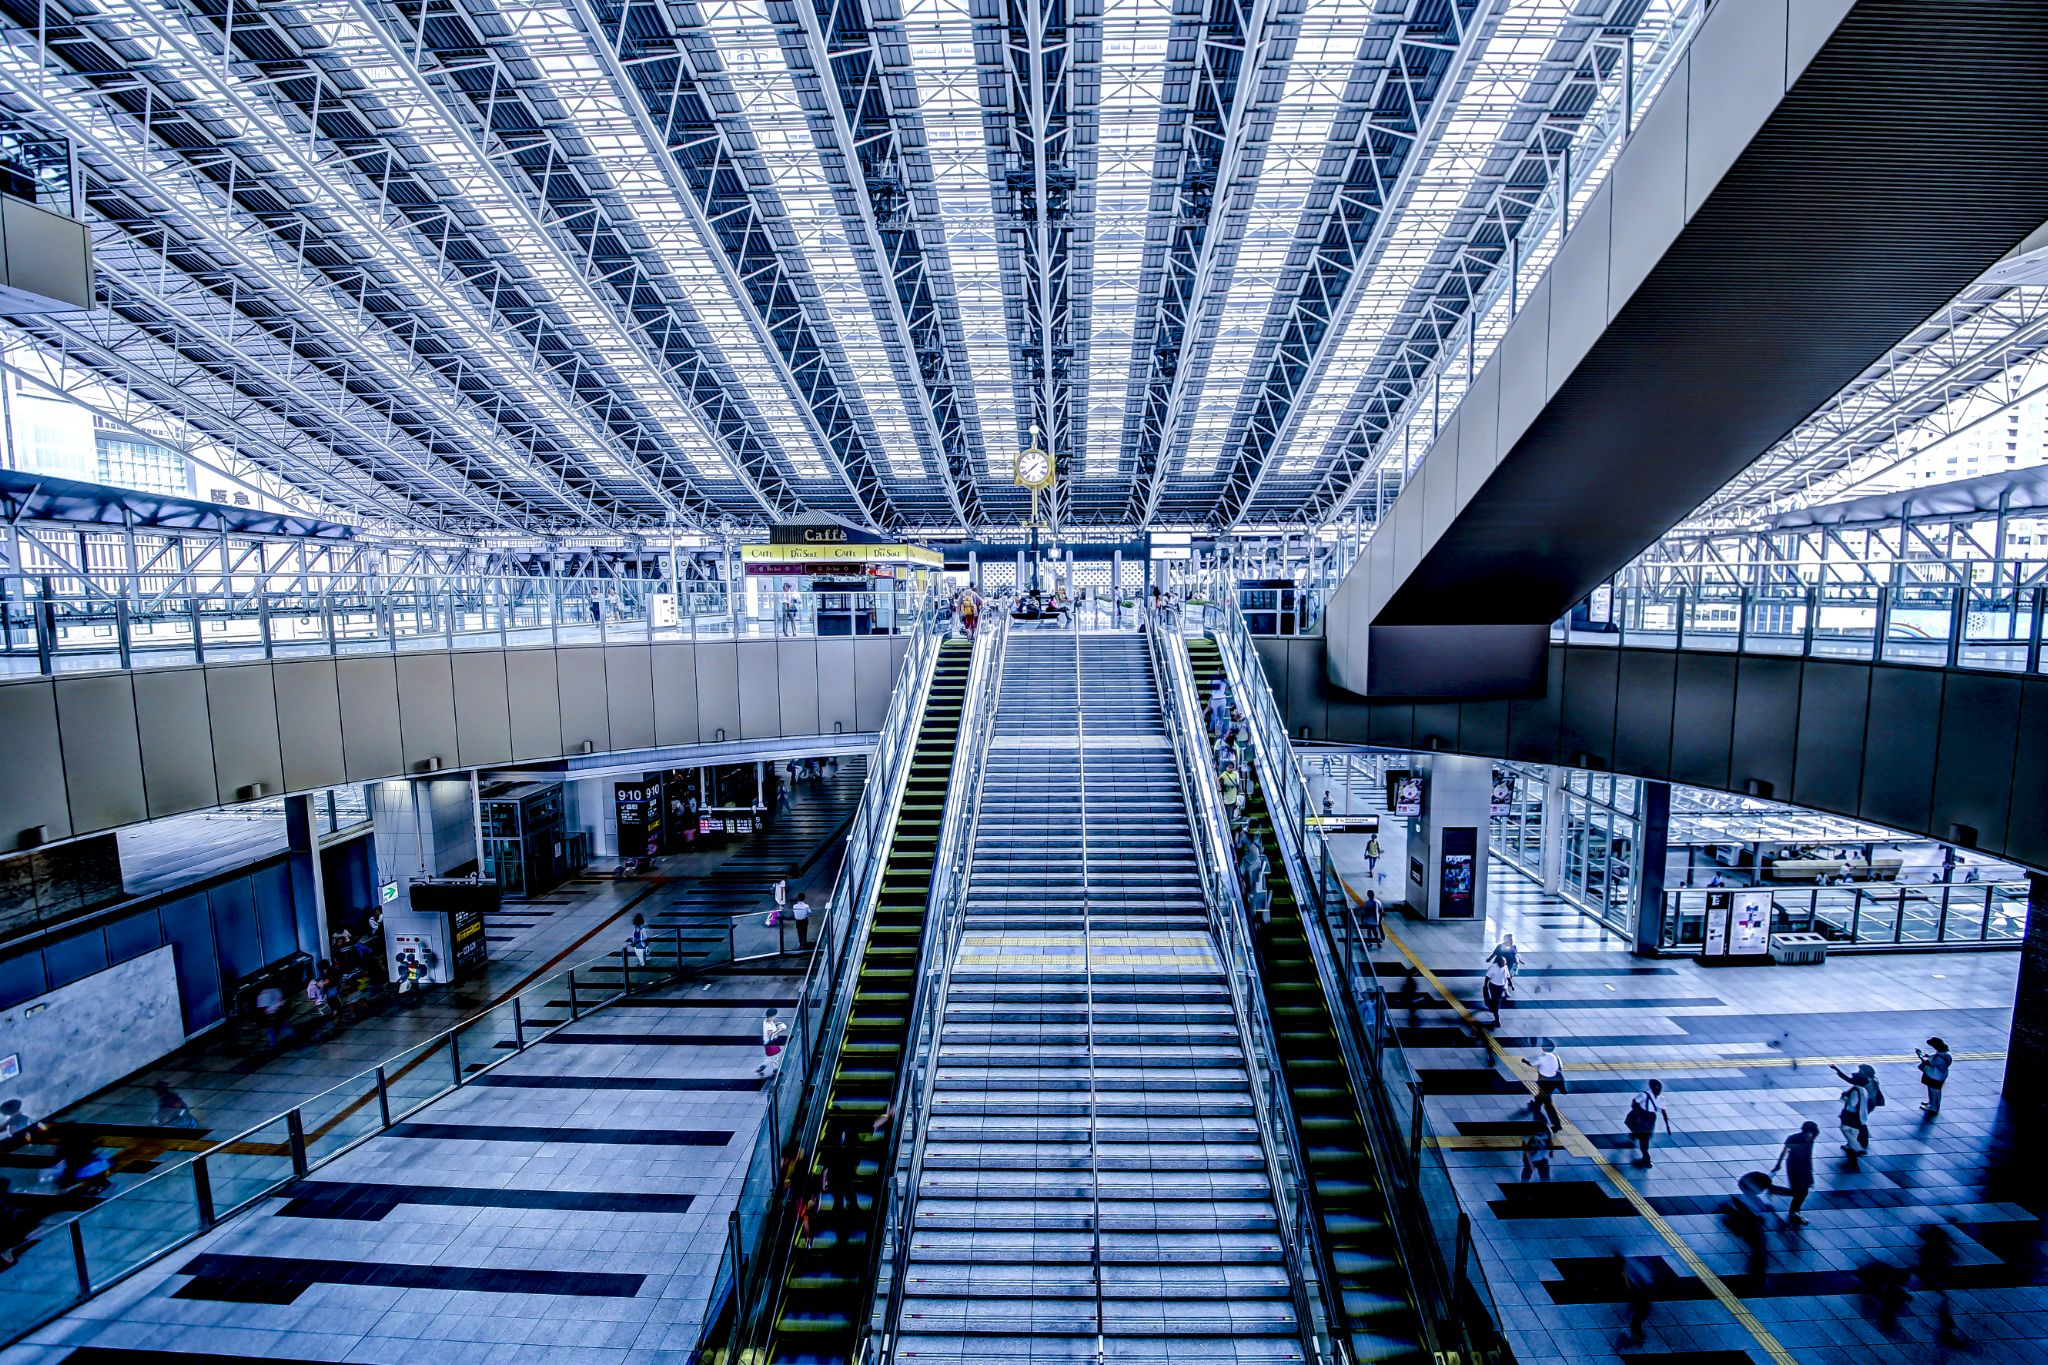 Osaka station by yukmiy